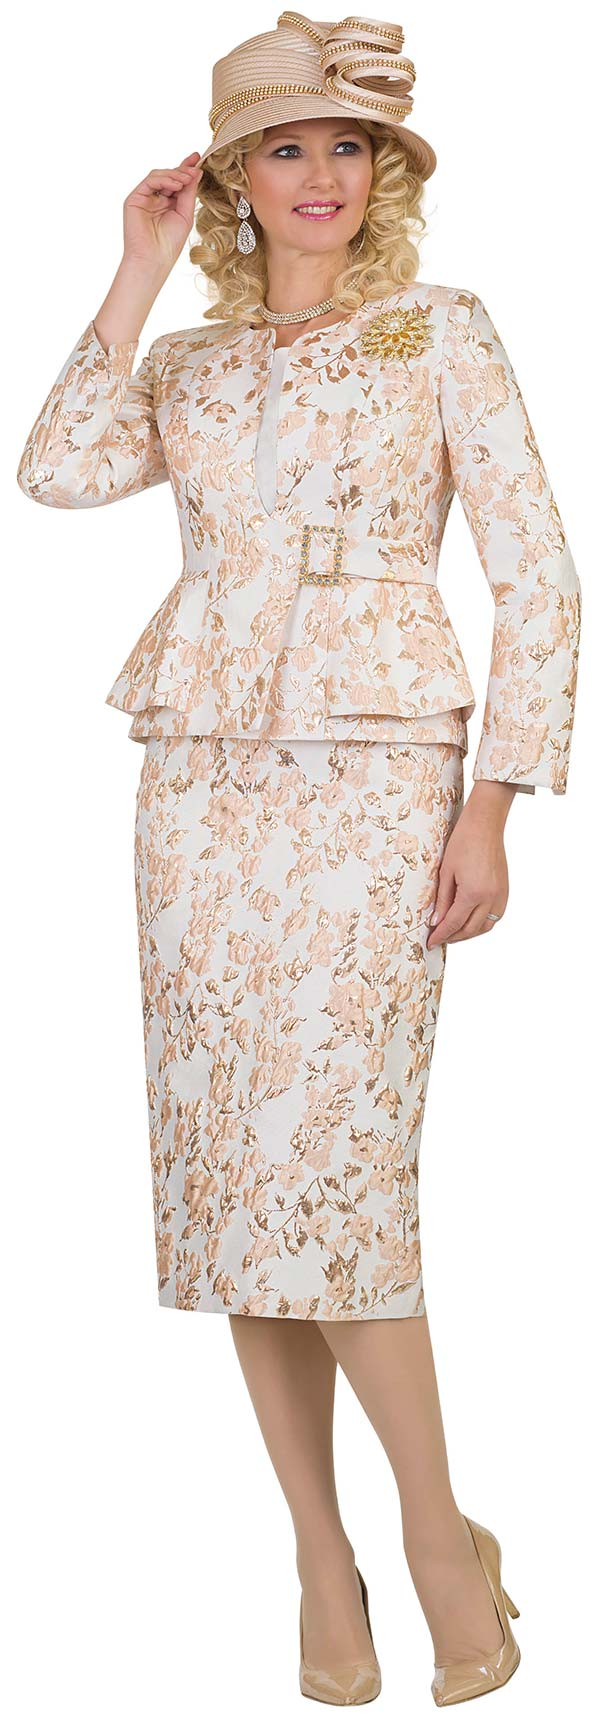 Lily and Taylor 4518-Gold -  Floral Pattern Design Skirt Suit With Peplum Lalyer Jacket